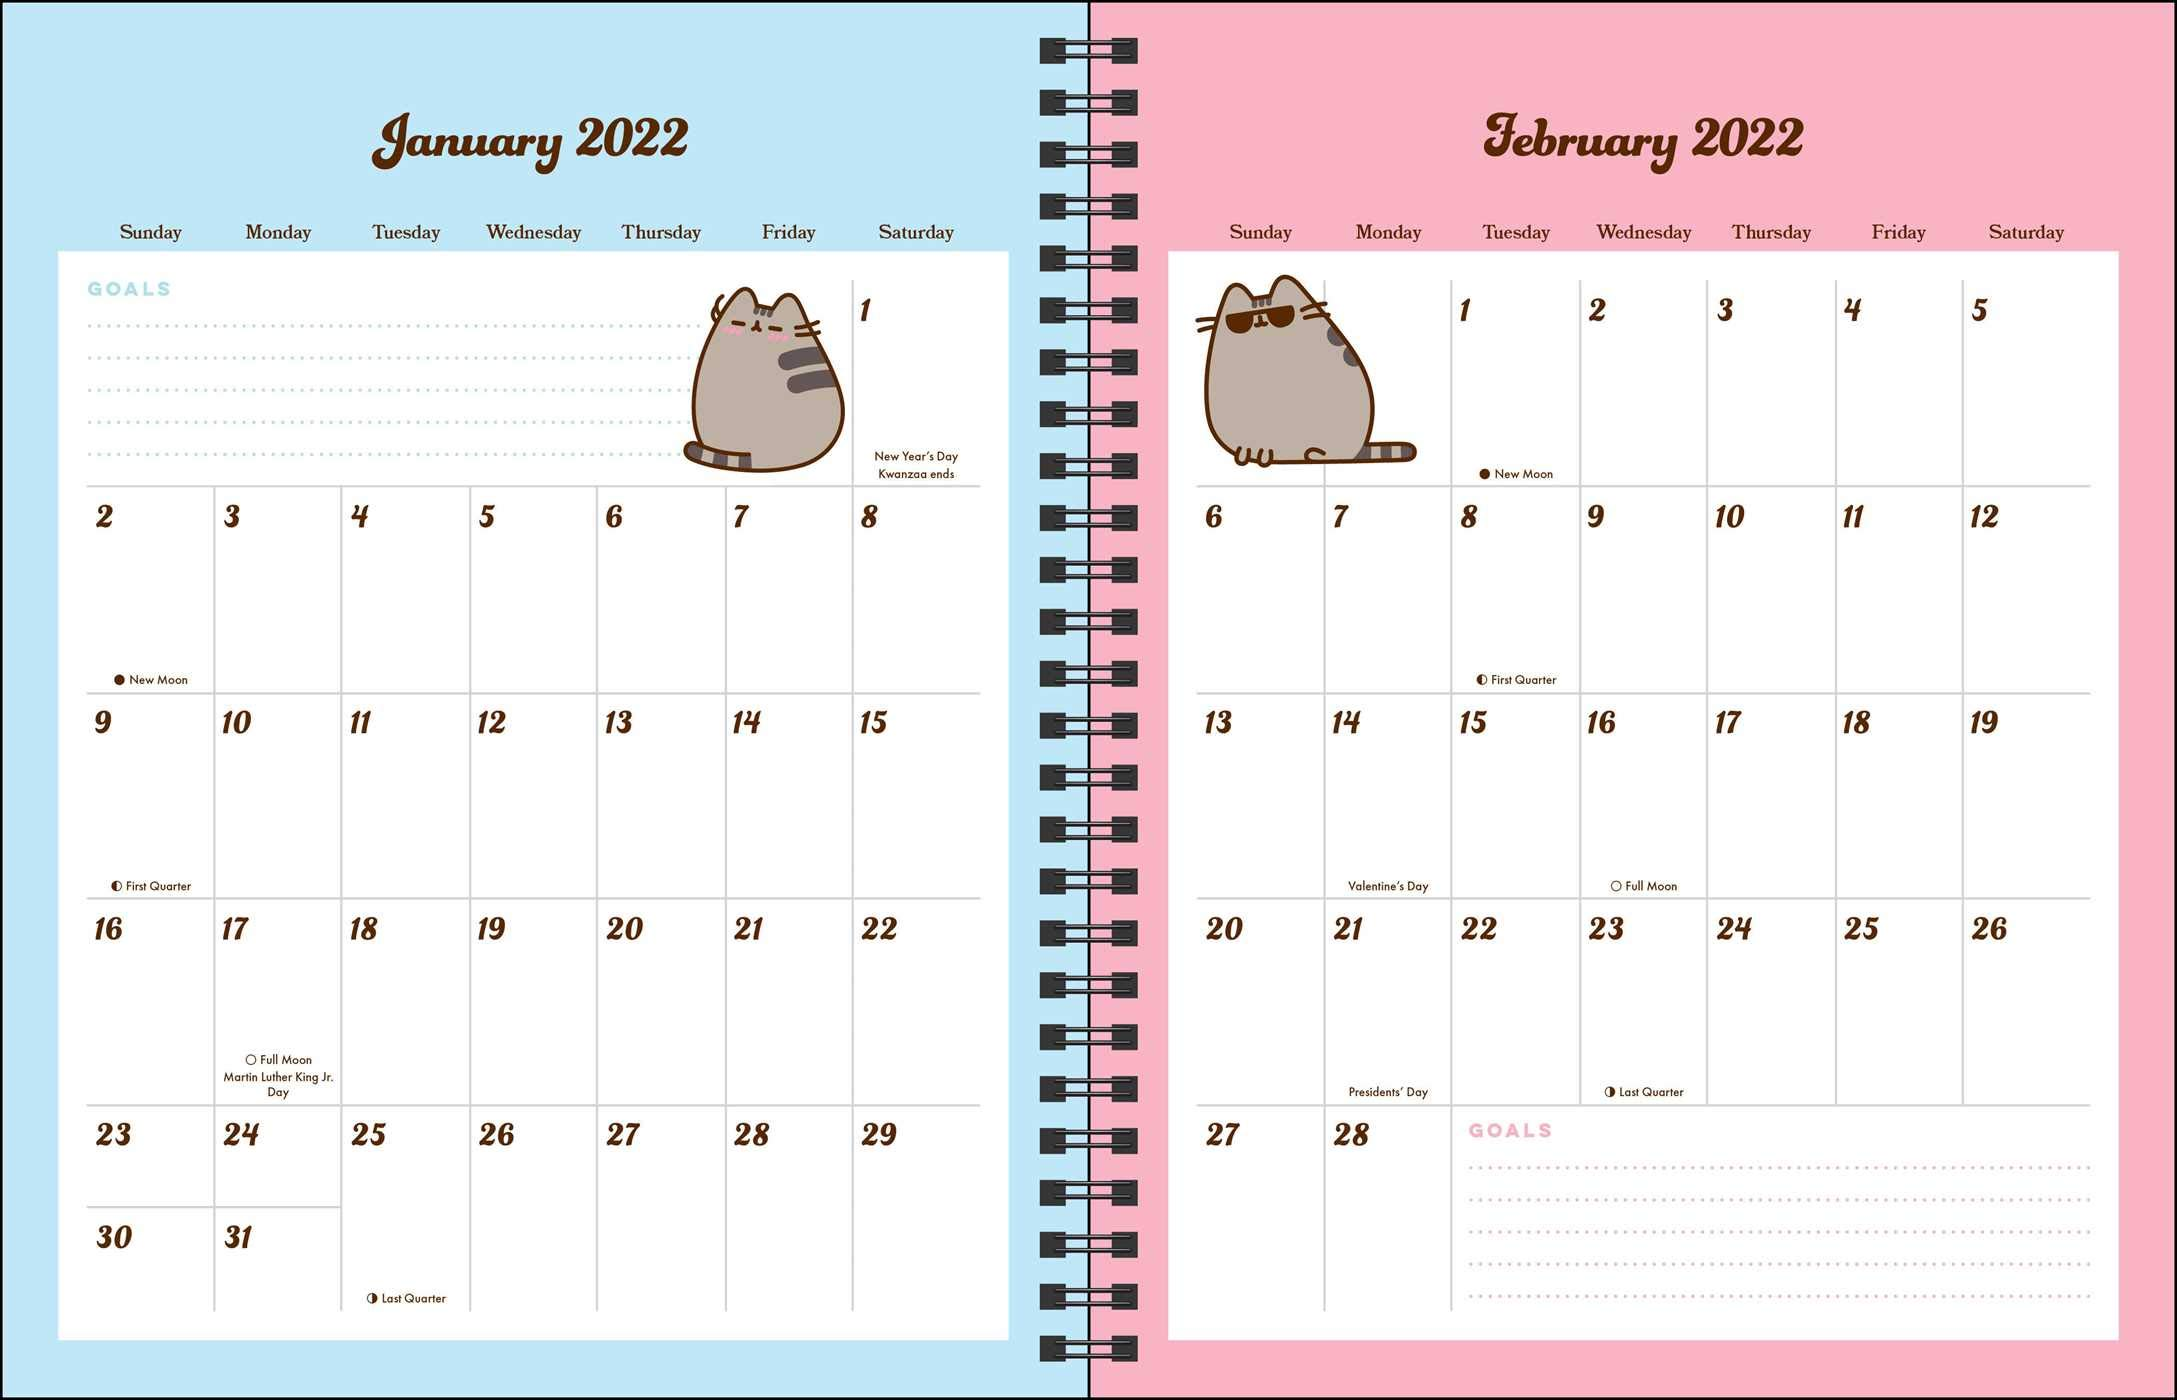 Pusheen Calendar 2022.Buy Pusheen 16 Month 2021 2022 Monthly Weekly Planner Calendar Book Online At Low Prices In India Pusheen 16 Month 2021 2022 Monthly Weekly Planner Calendar Reviews Ratings Amazon In